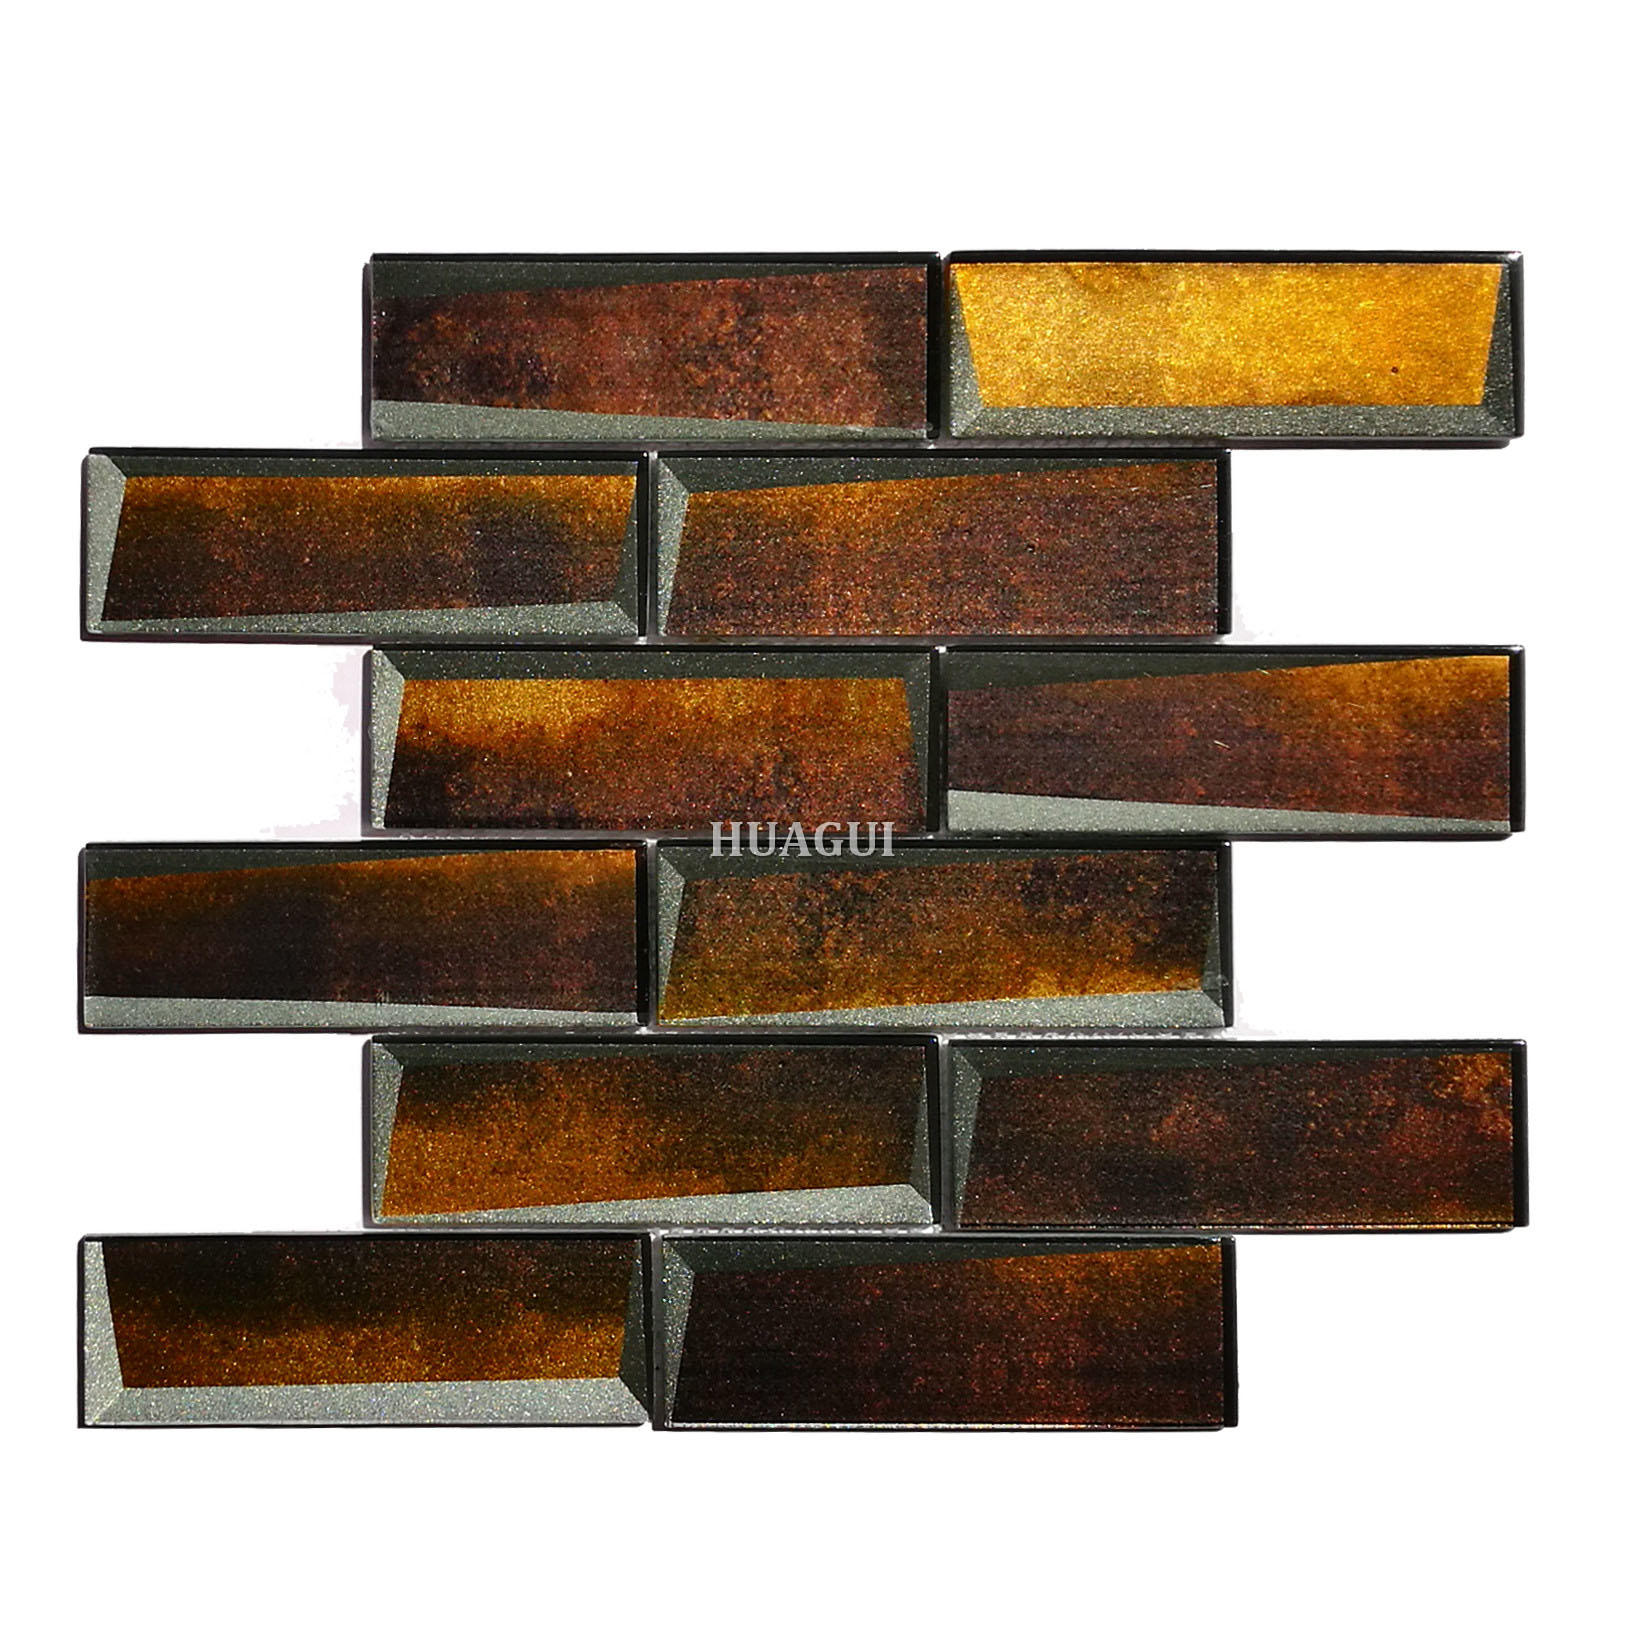 Luxury glass 3D effect subway tile for kitchen wall design